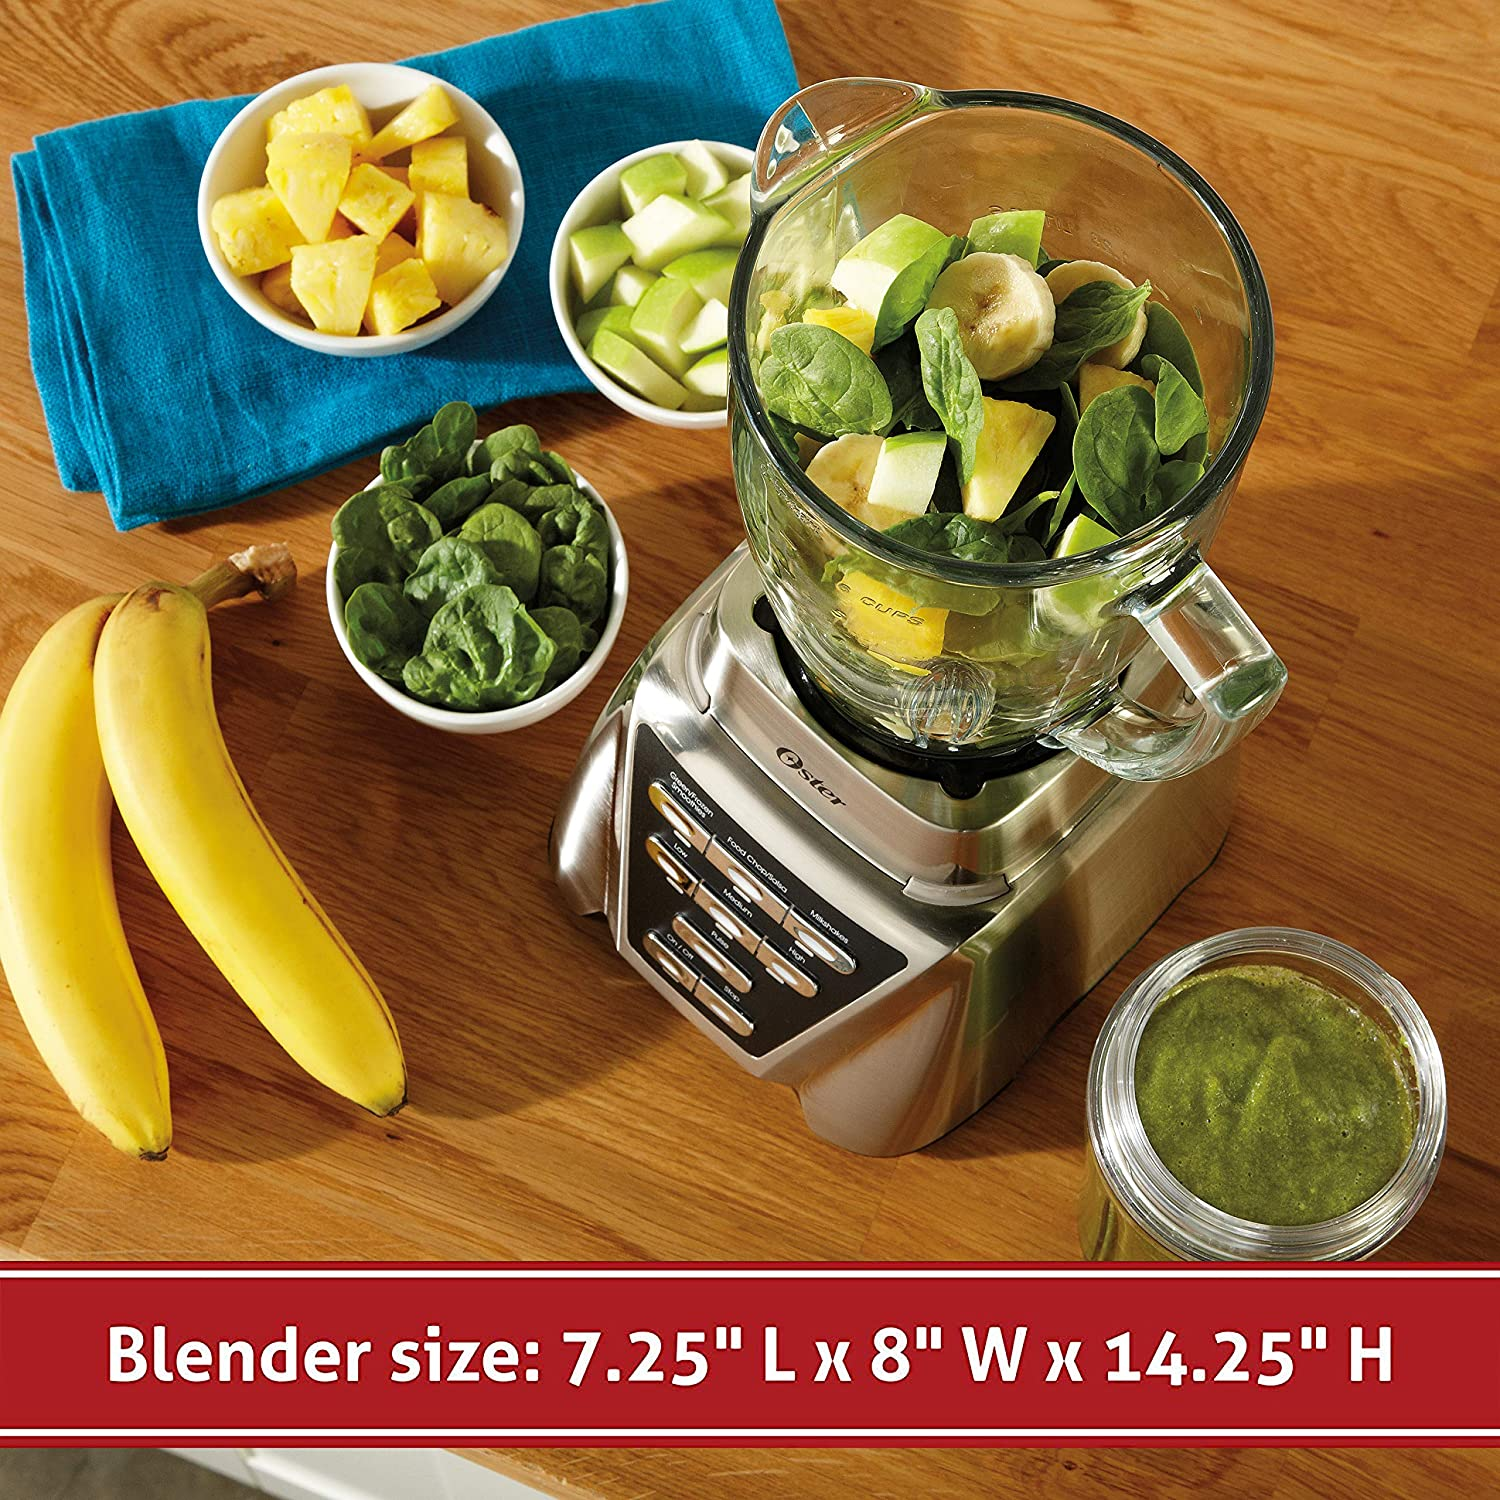 Best Blenders For Acai Bowls - Blendtec Total Classic Original Blender